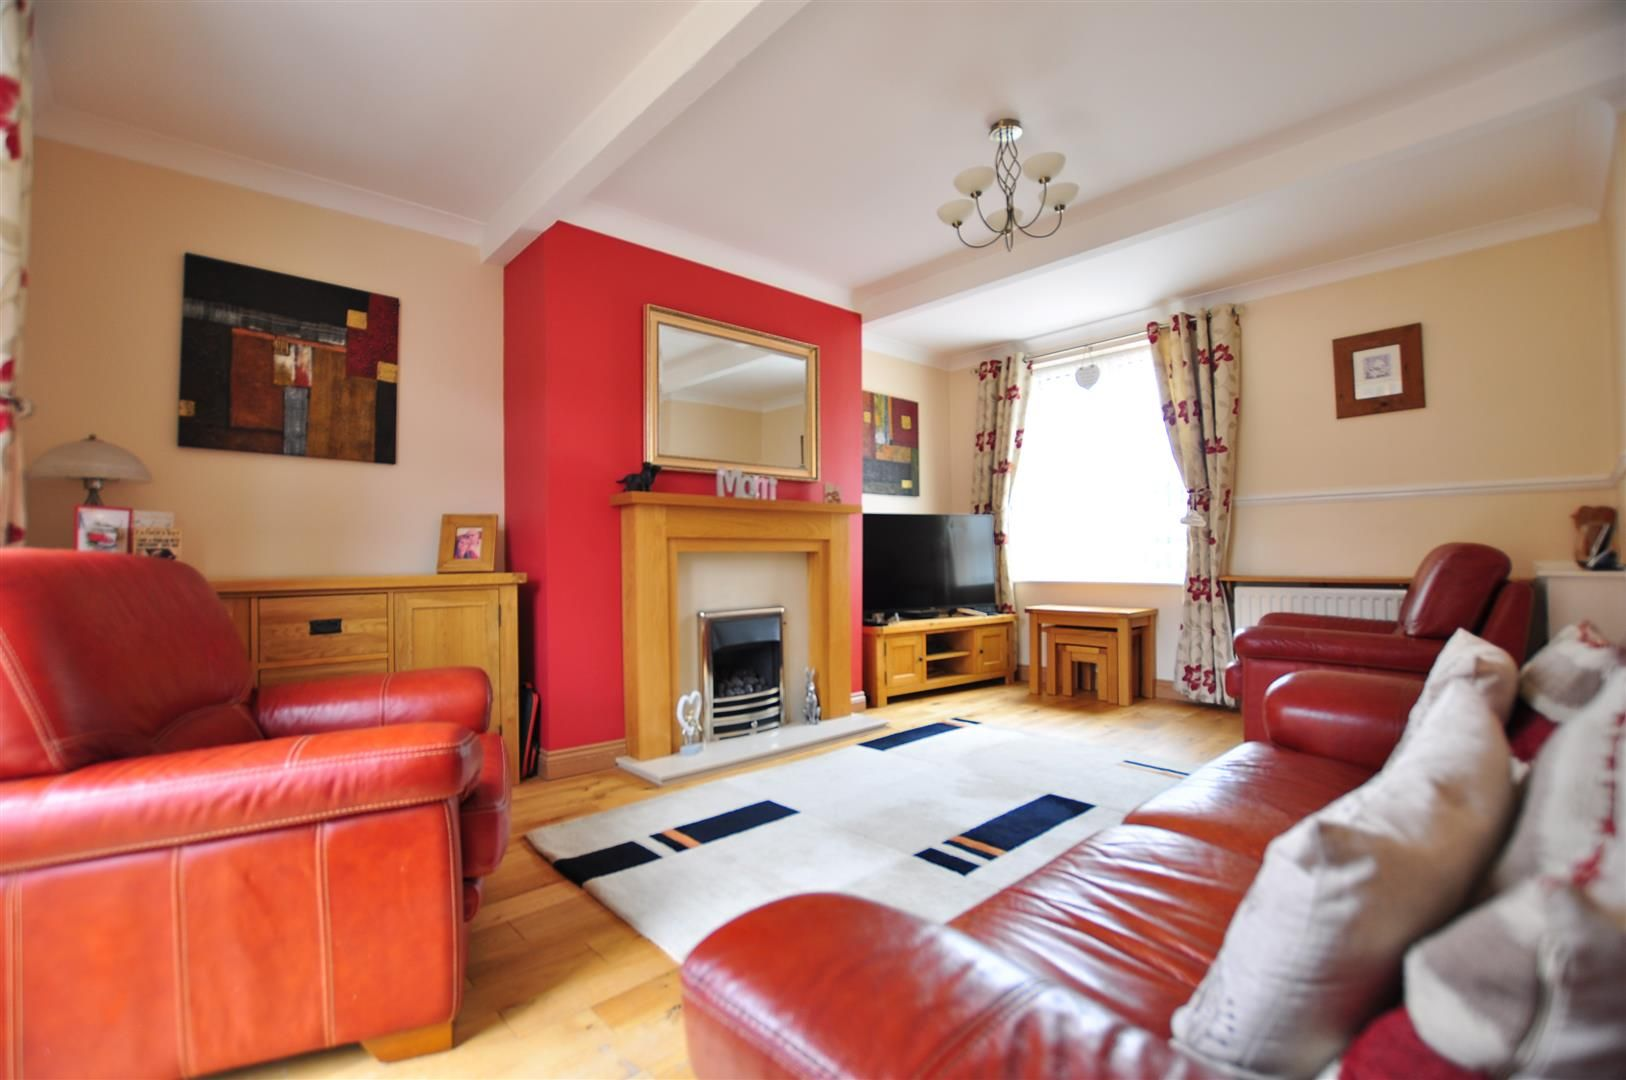 3 bed semi-detached for sale in Lower Gornal 4